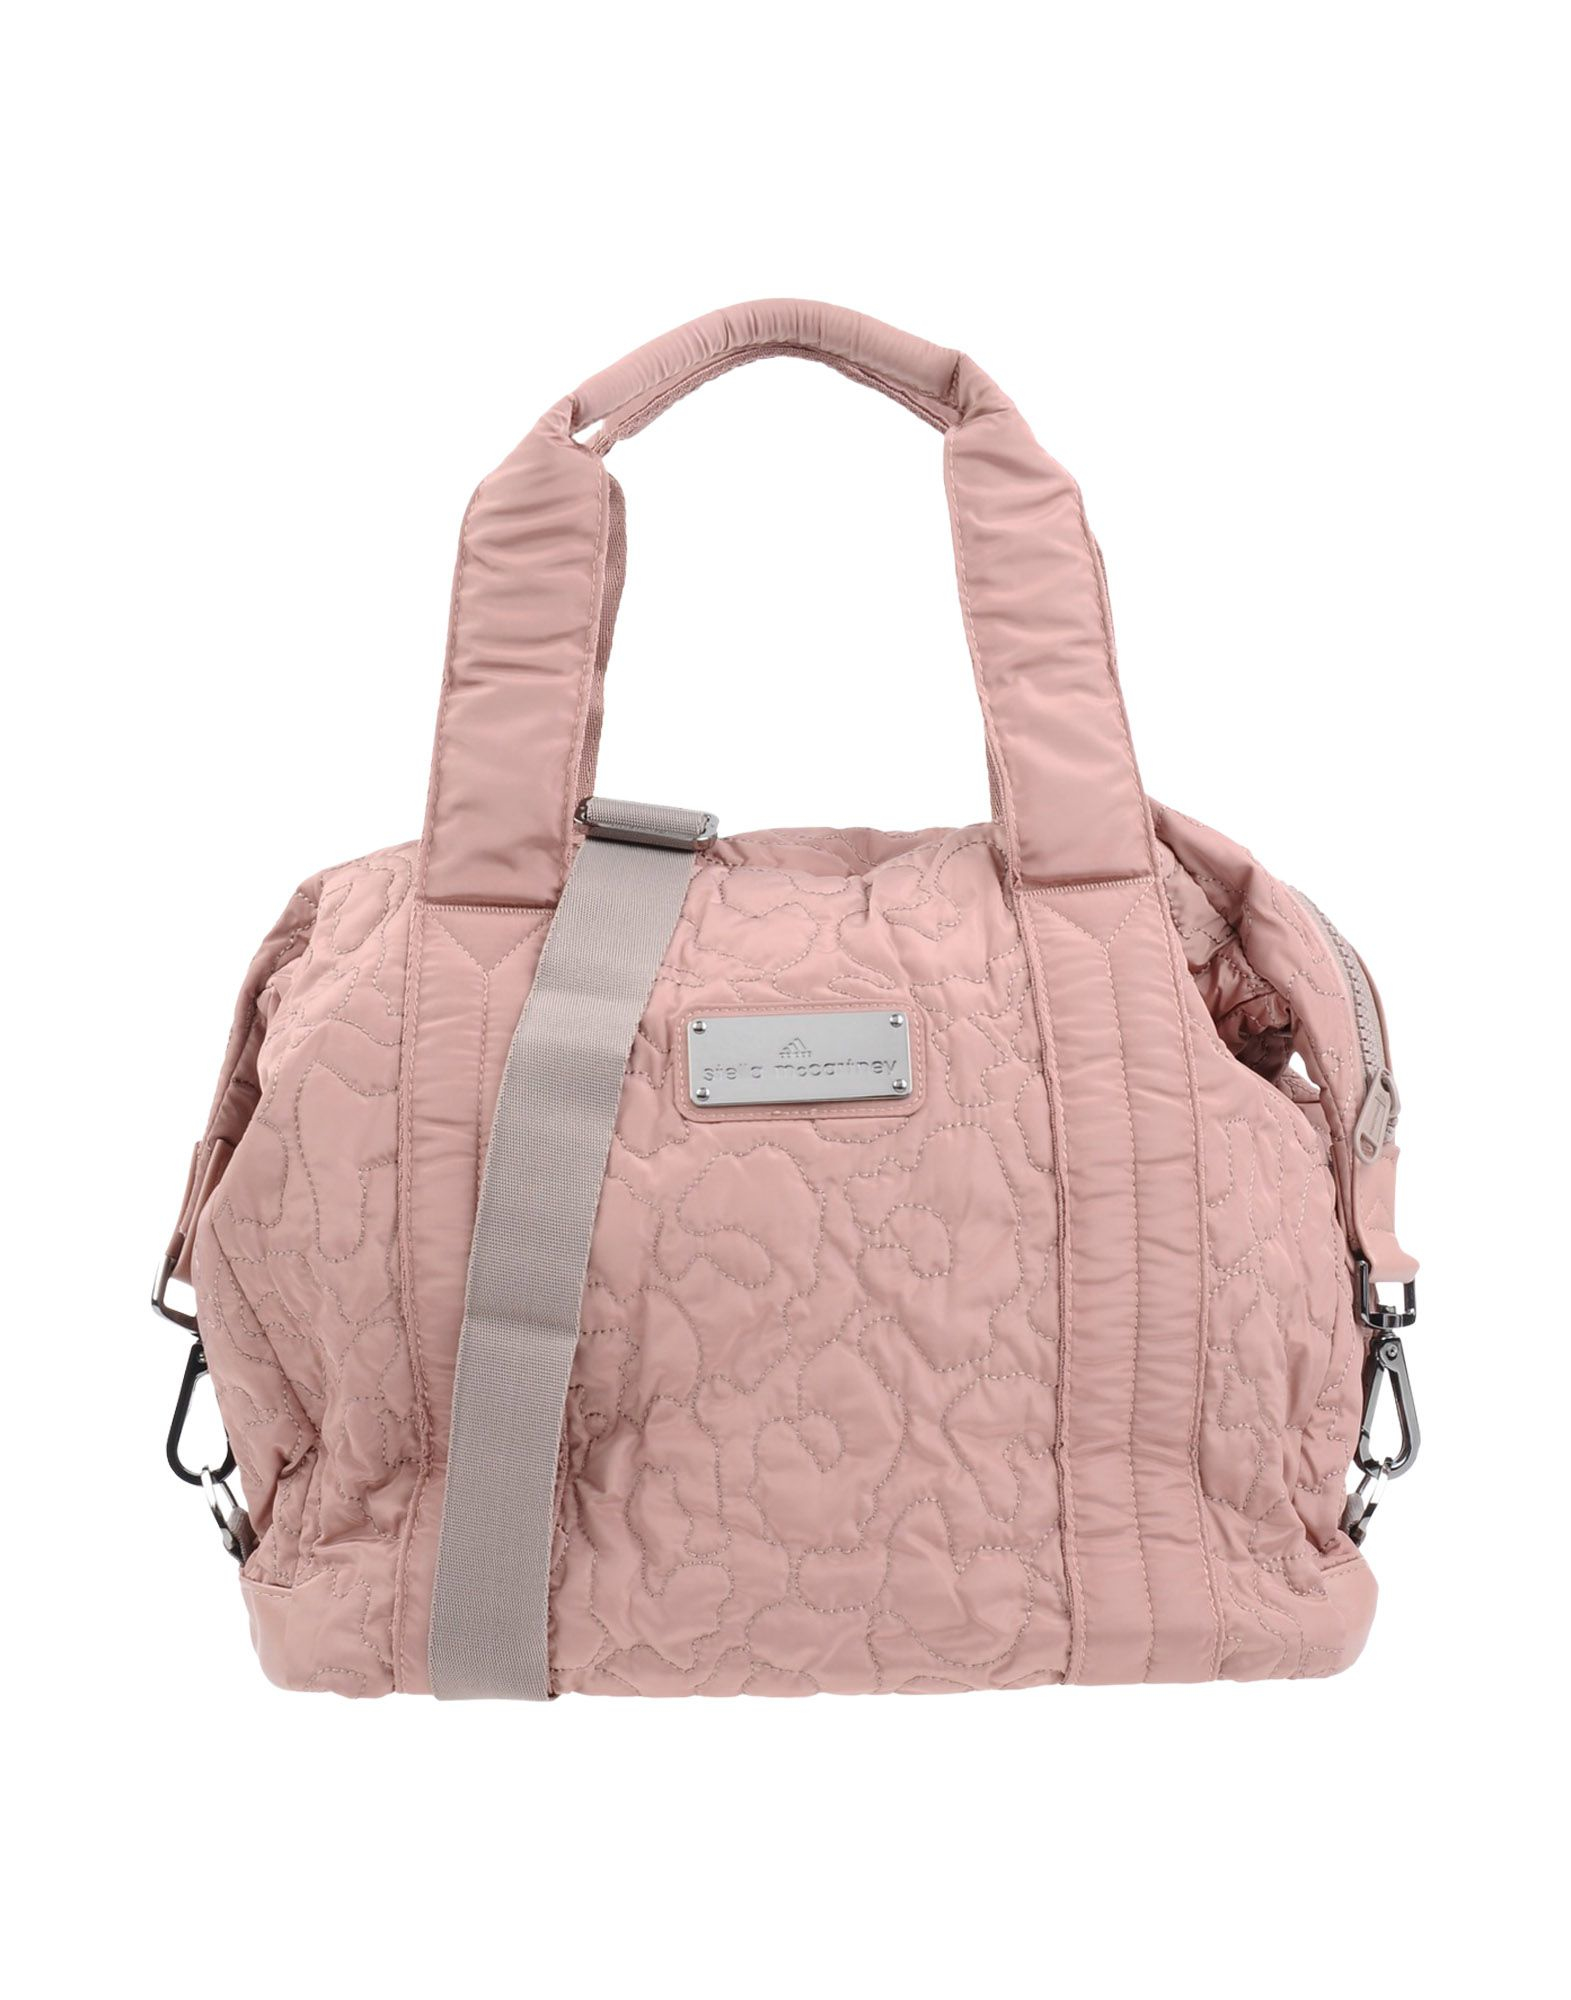 Lyst - adidas By Stella McCartney Medium Quilted Gym Bag in Pink bd3e13e173